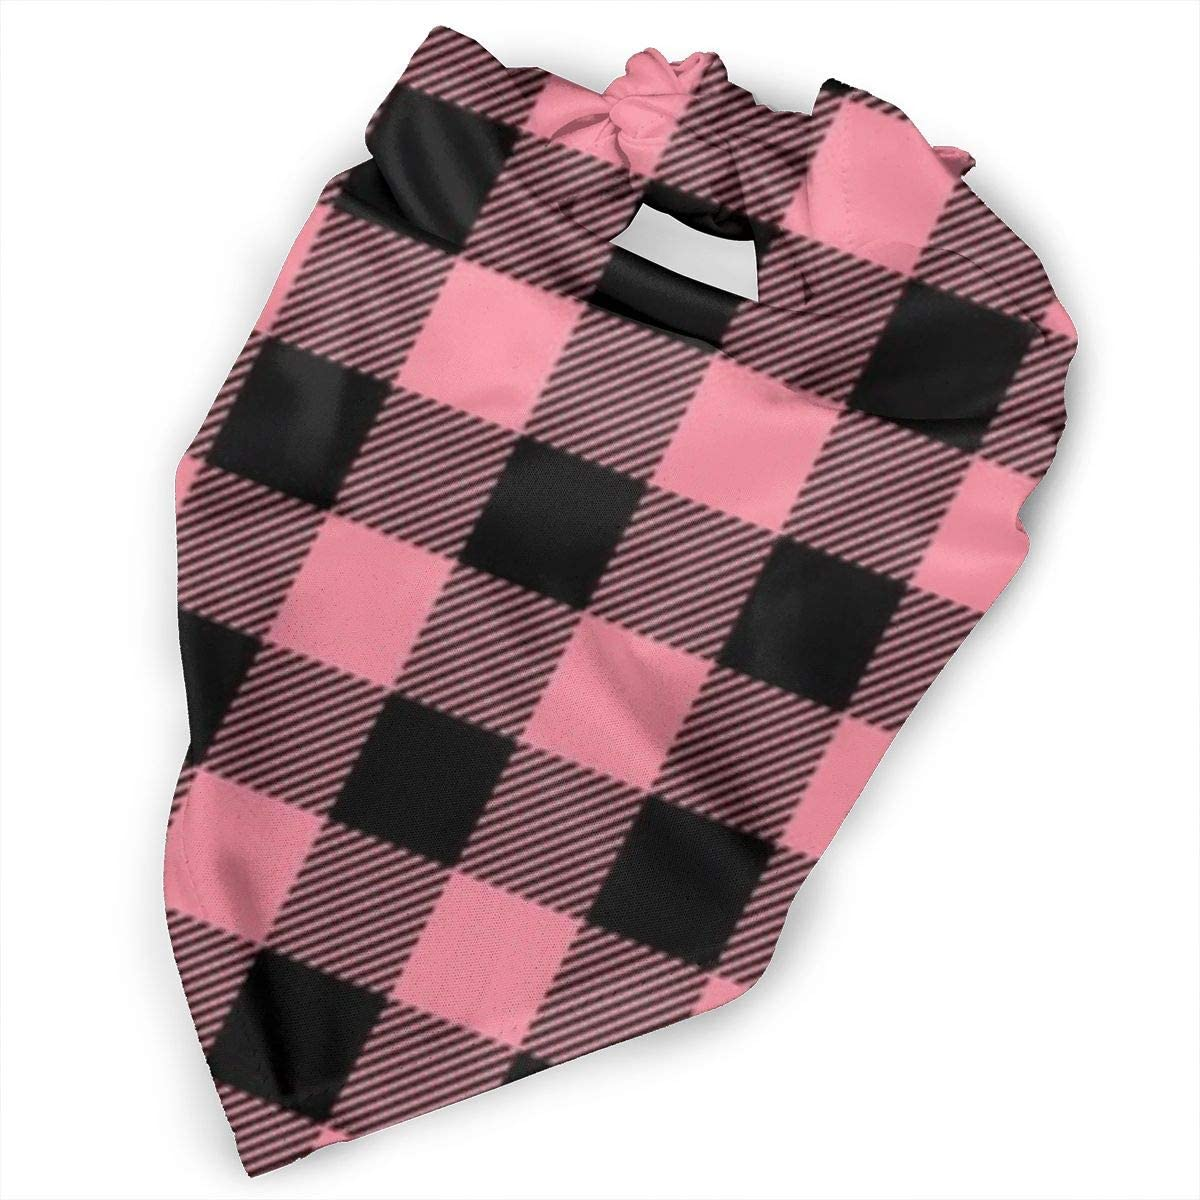 Reversible Plaid Bibs Scarf Washable and Adjustable Kerchief Pet Scarf for Dogs Cats Pets Daily Use Buffalo Plaid in Pretty Pink Triangle Dog Bandana